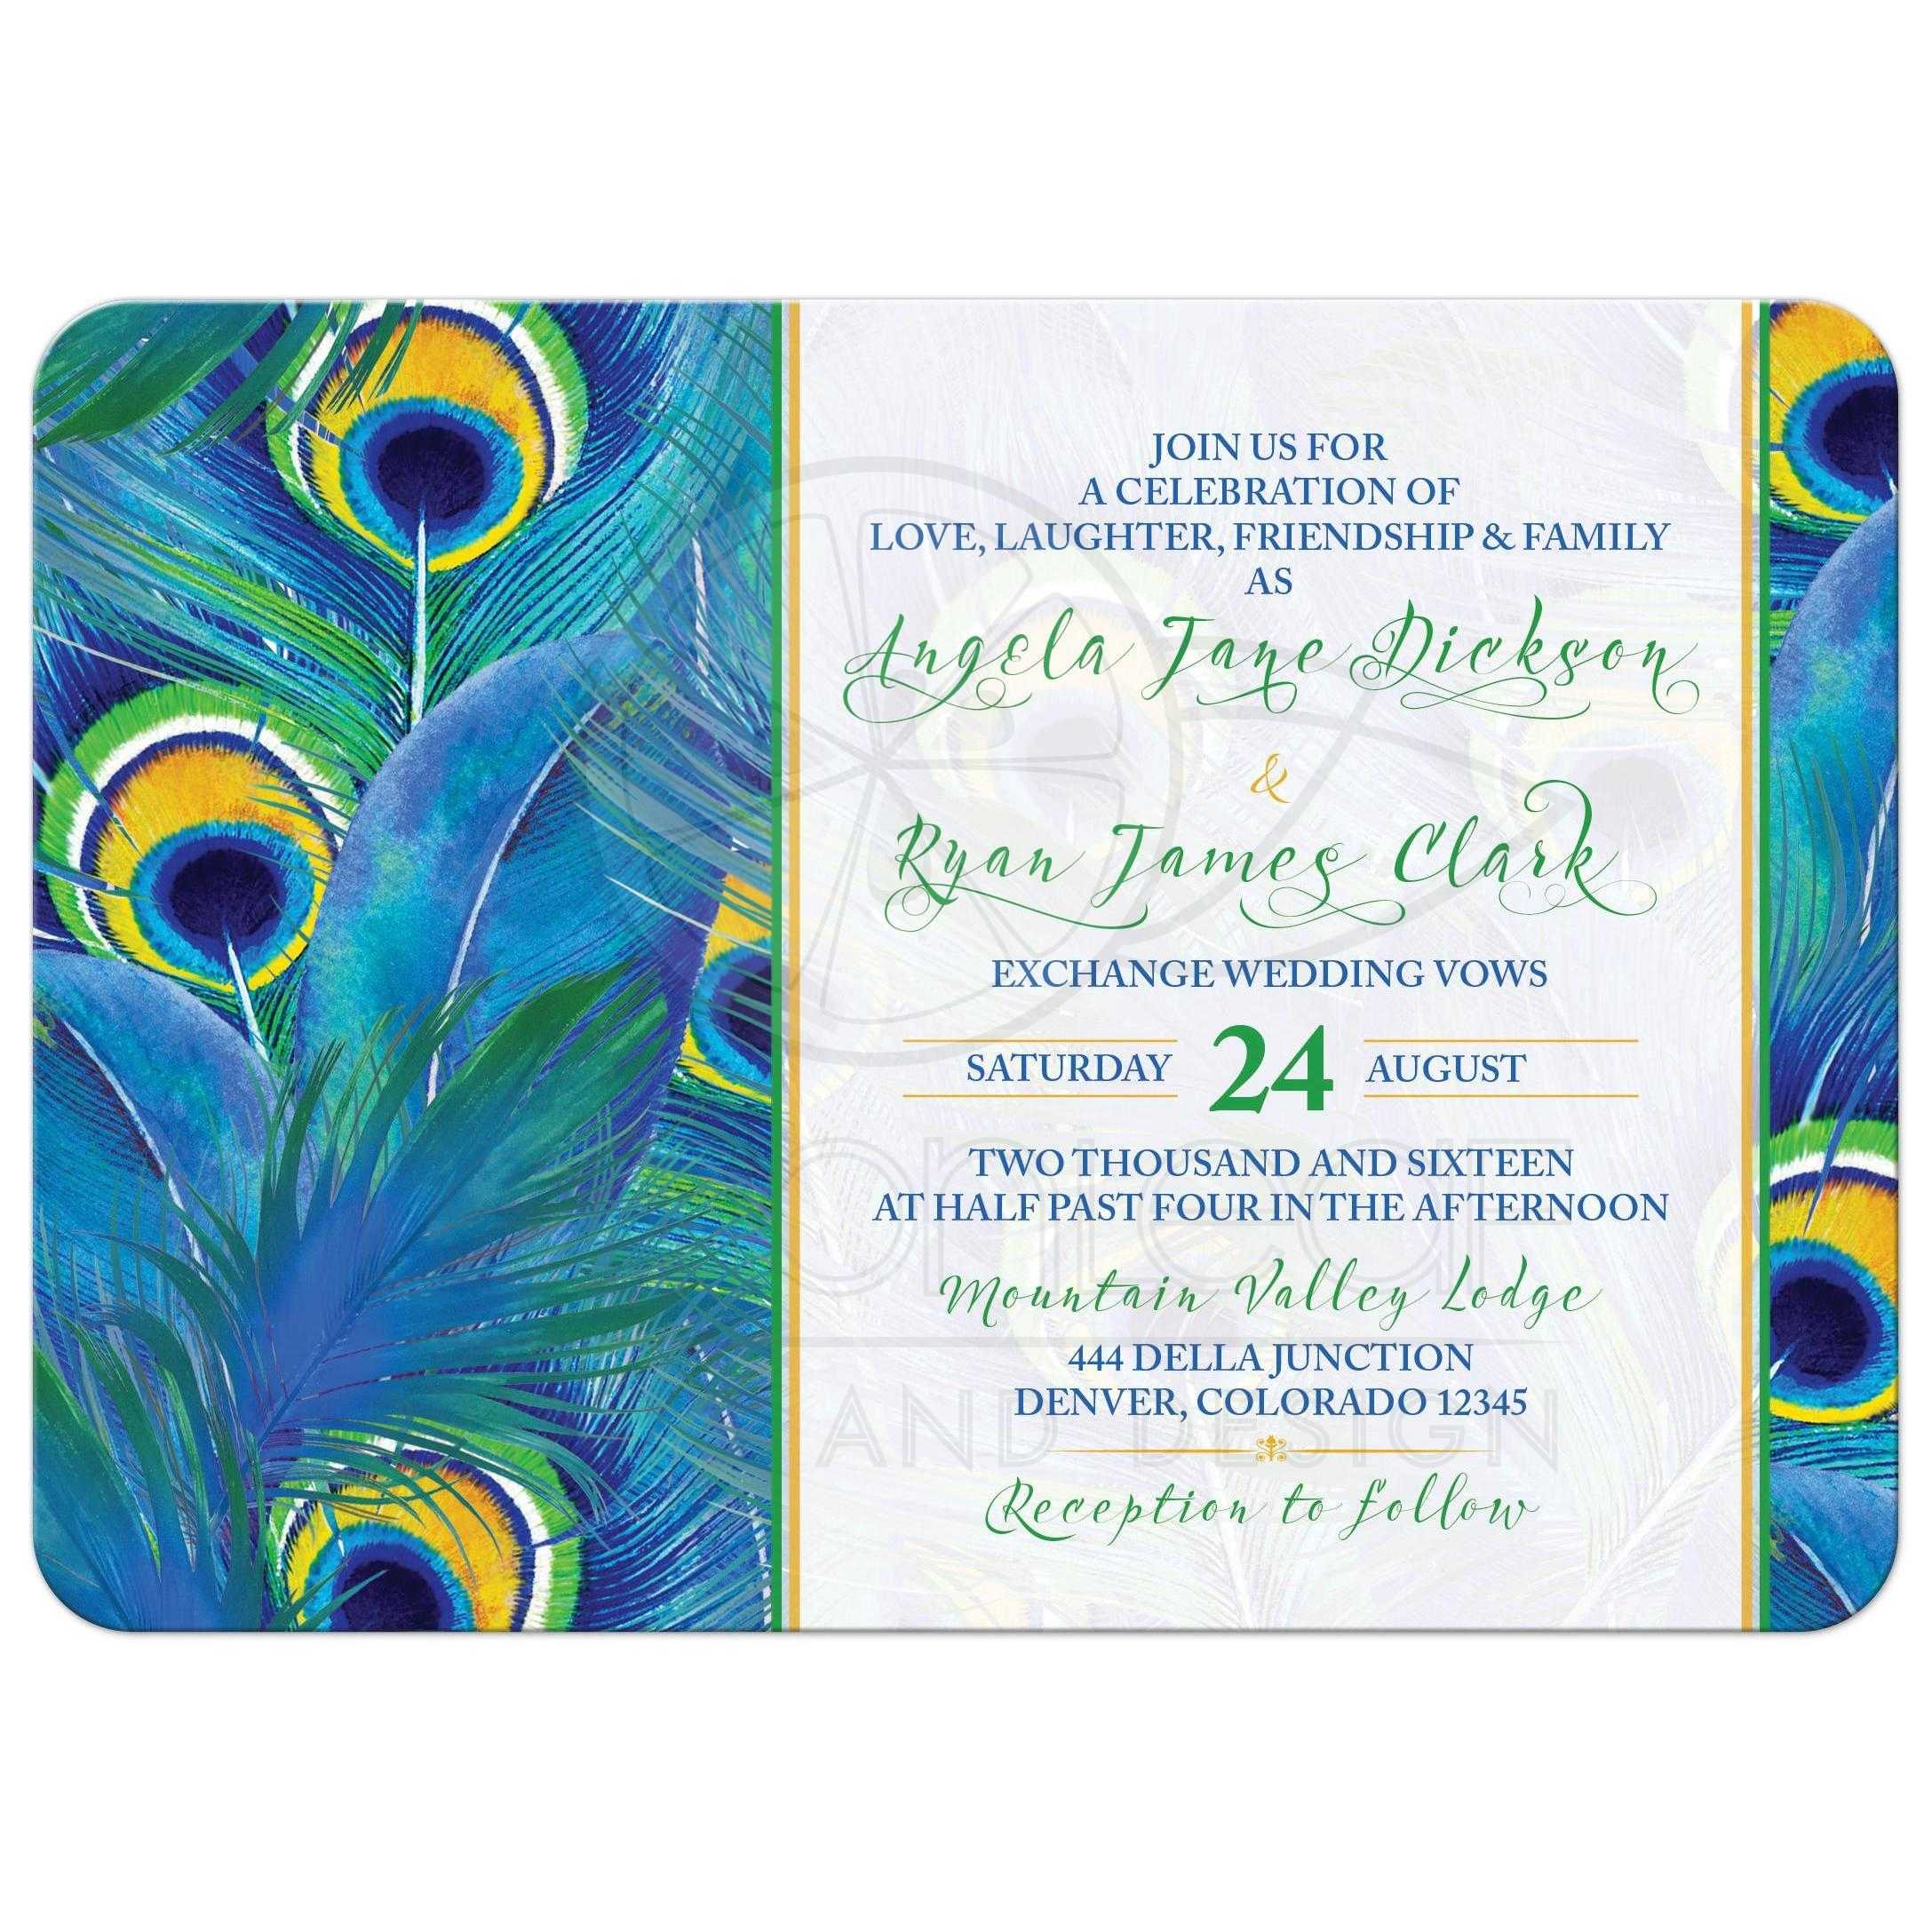 Peacock feather wedding invitation watercolor blue for Peacock wedding invitations with photo